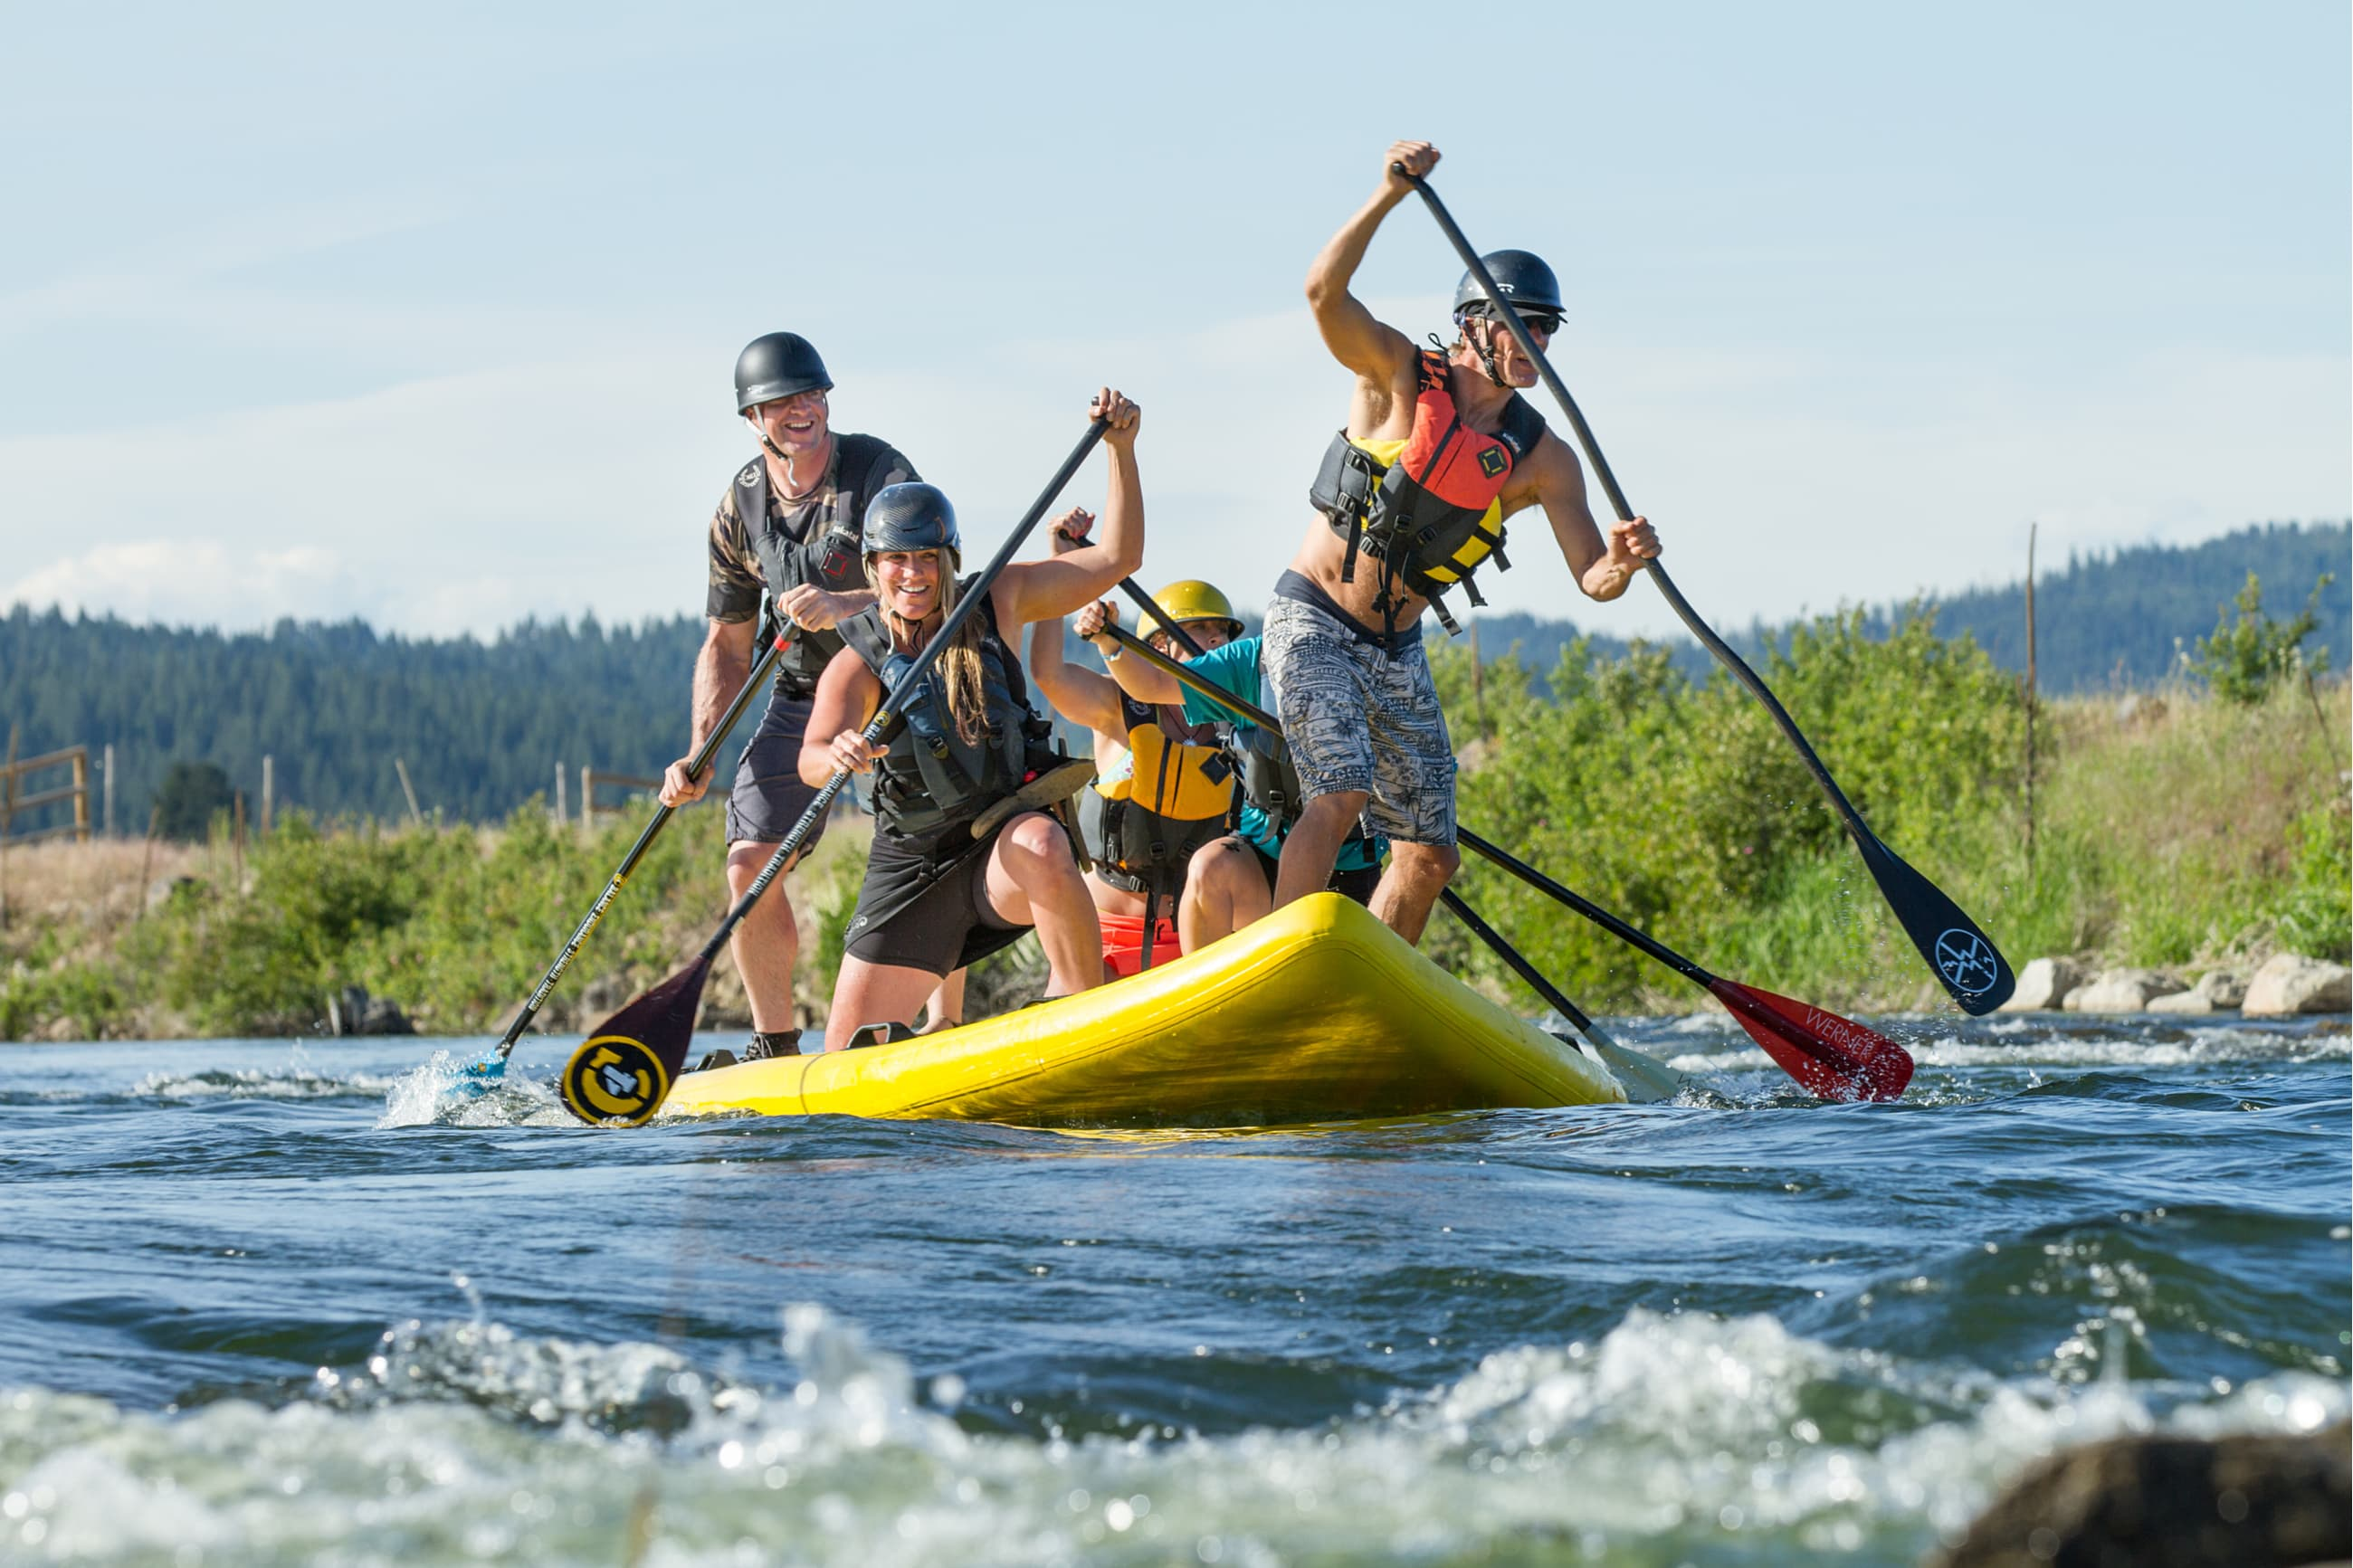 5 people on a large inflatable stand up paddle board racing down a river